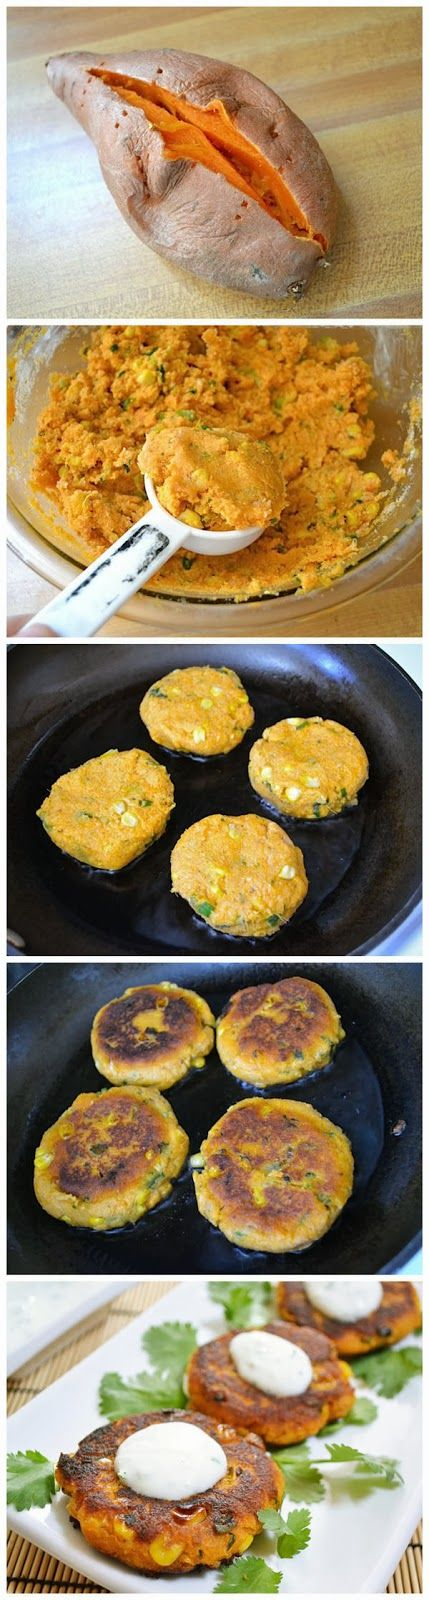 Sweet potato cakes with garlic dipping sauce. For dairy free, change the dipping sauce